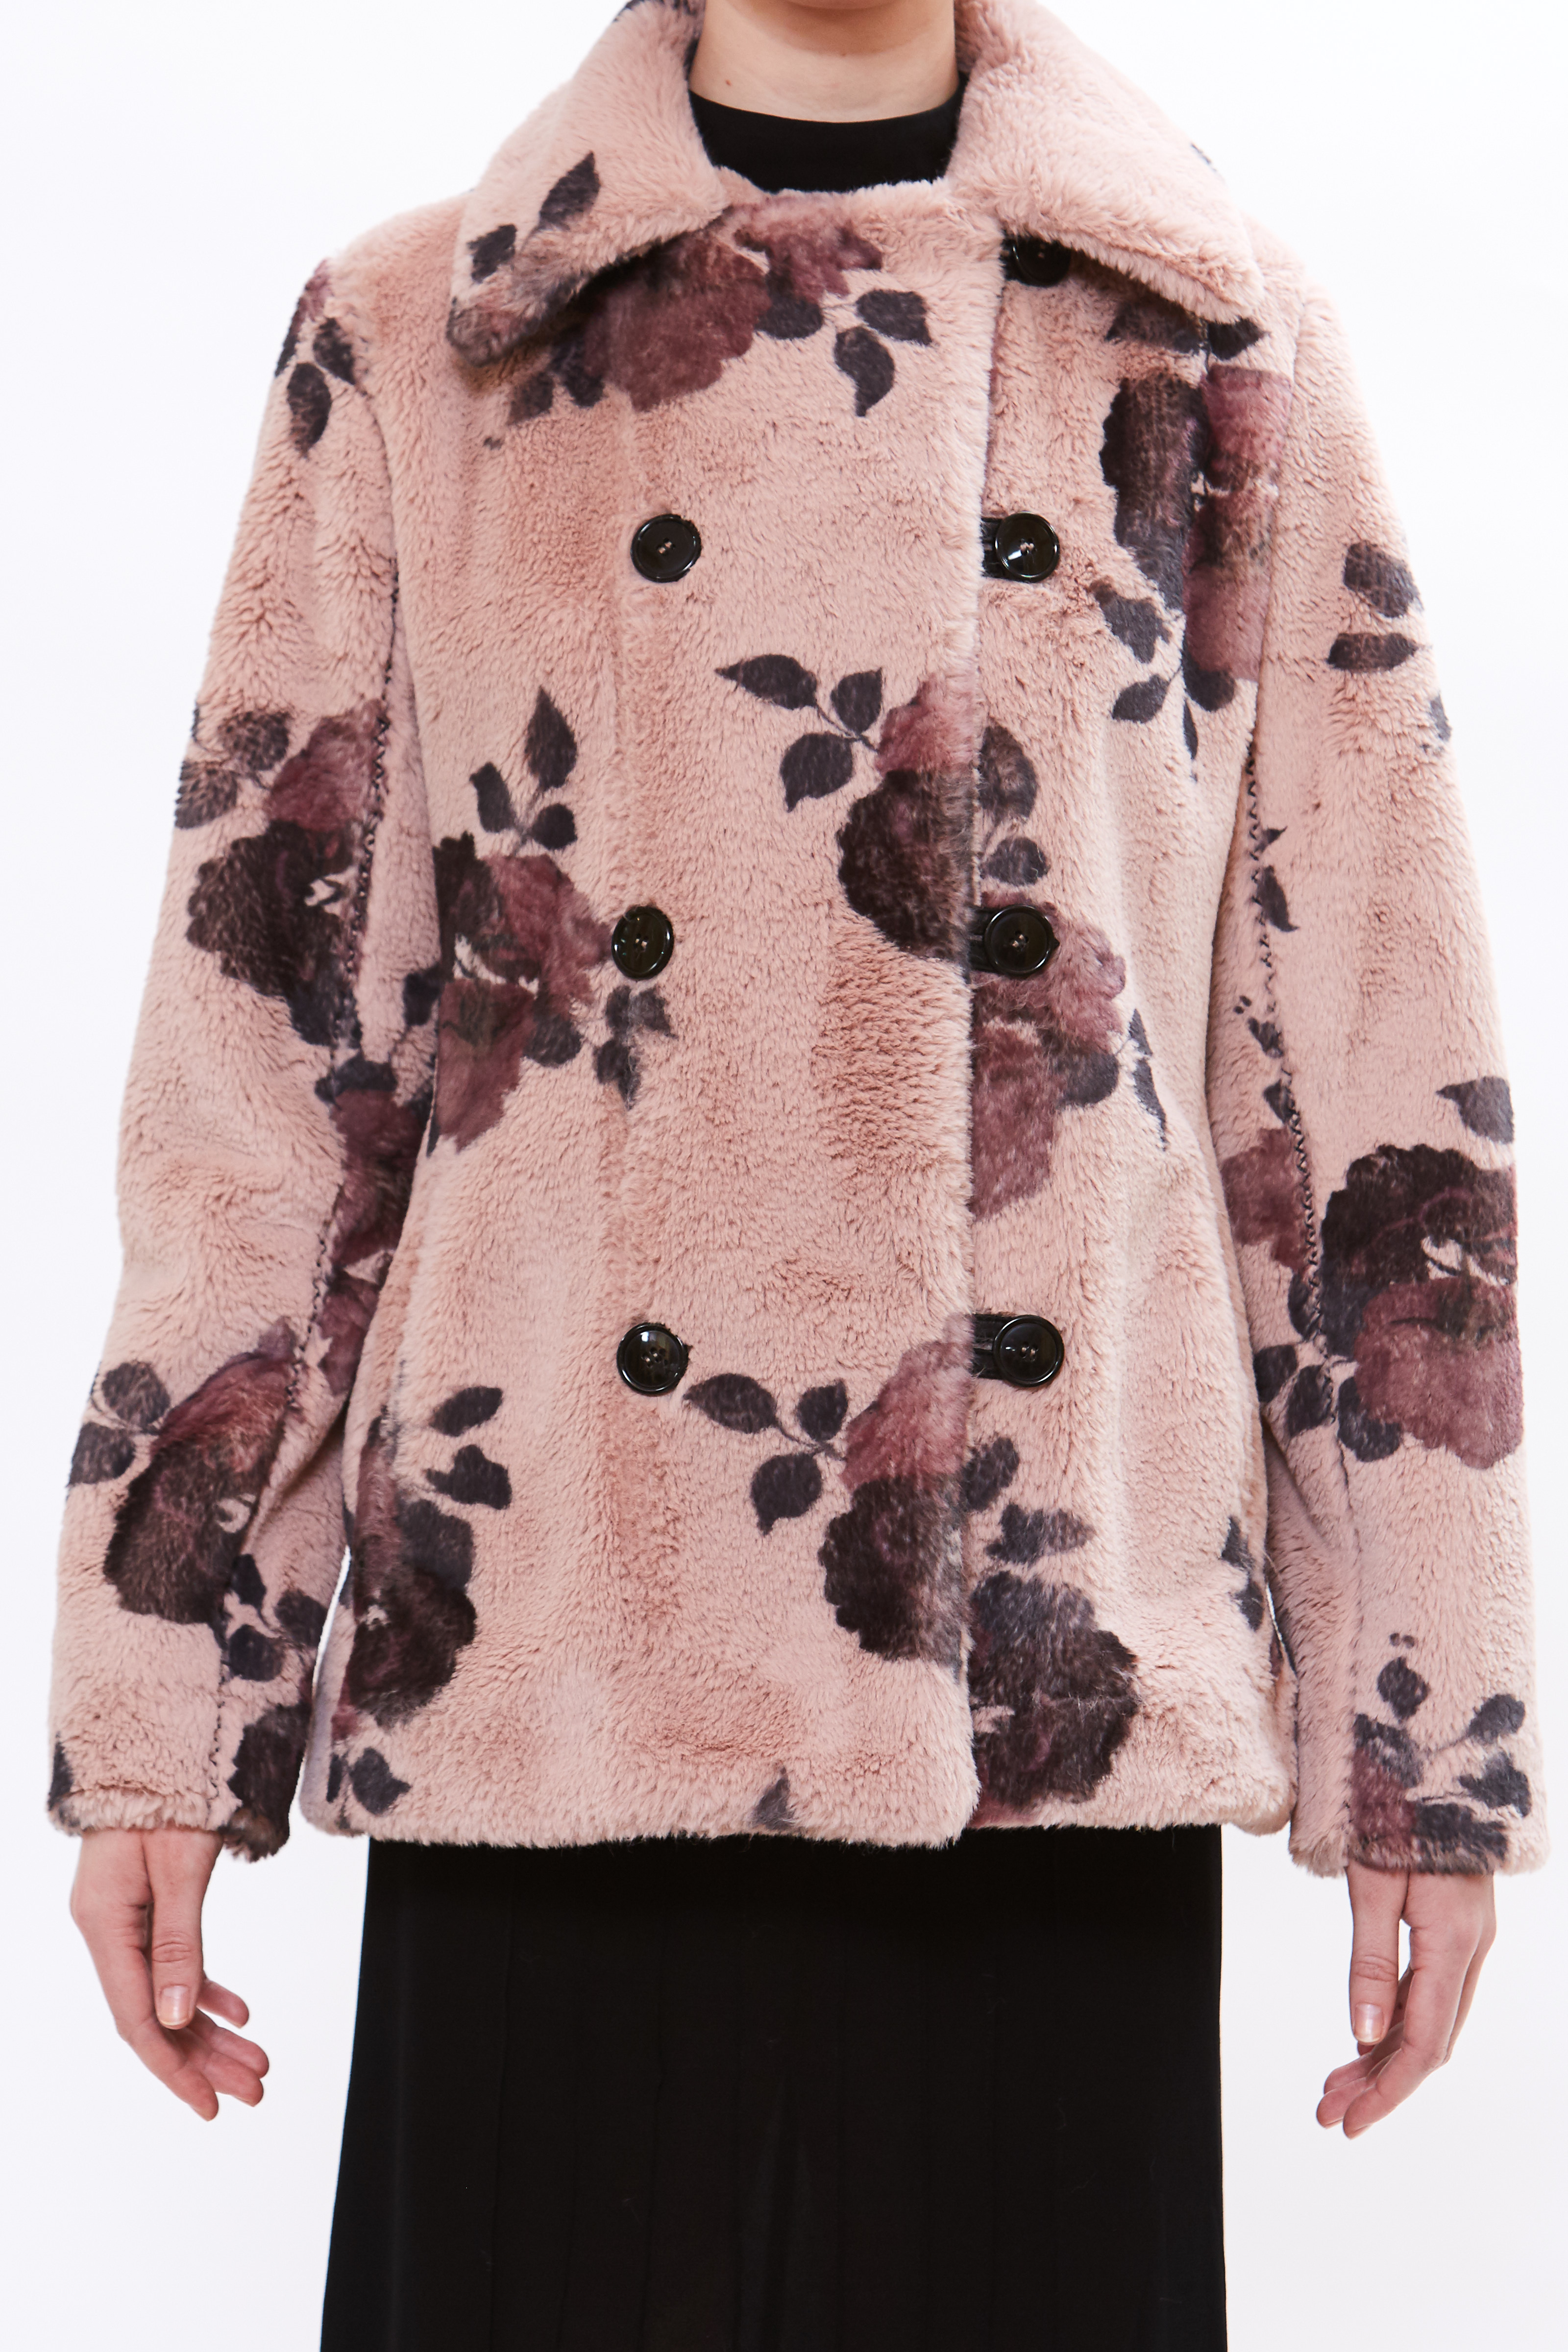 Colette - Rose Nuage by Maison Atia on curated-crowd.com